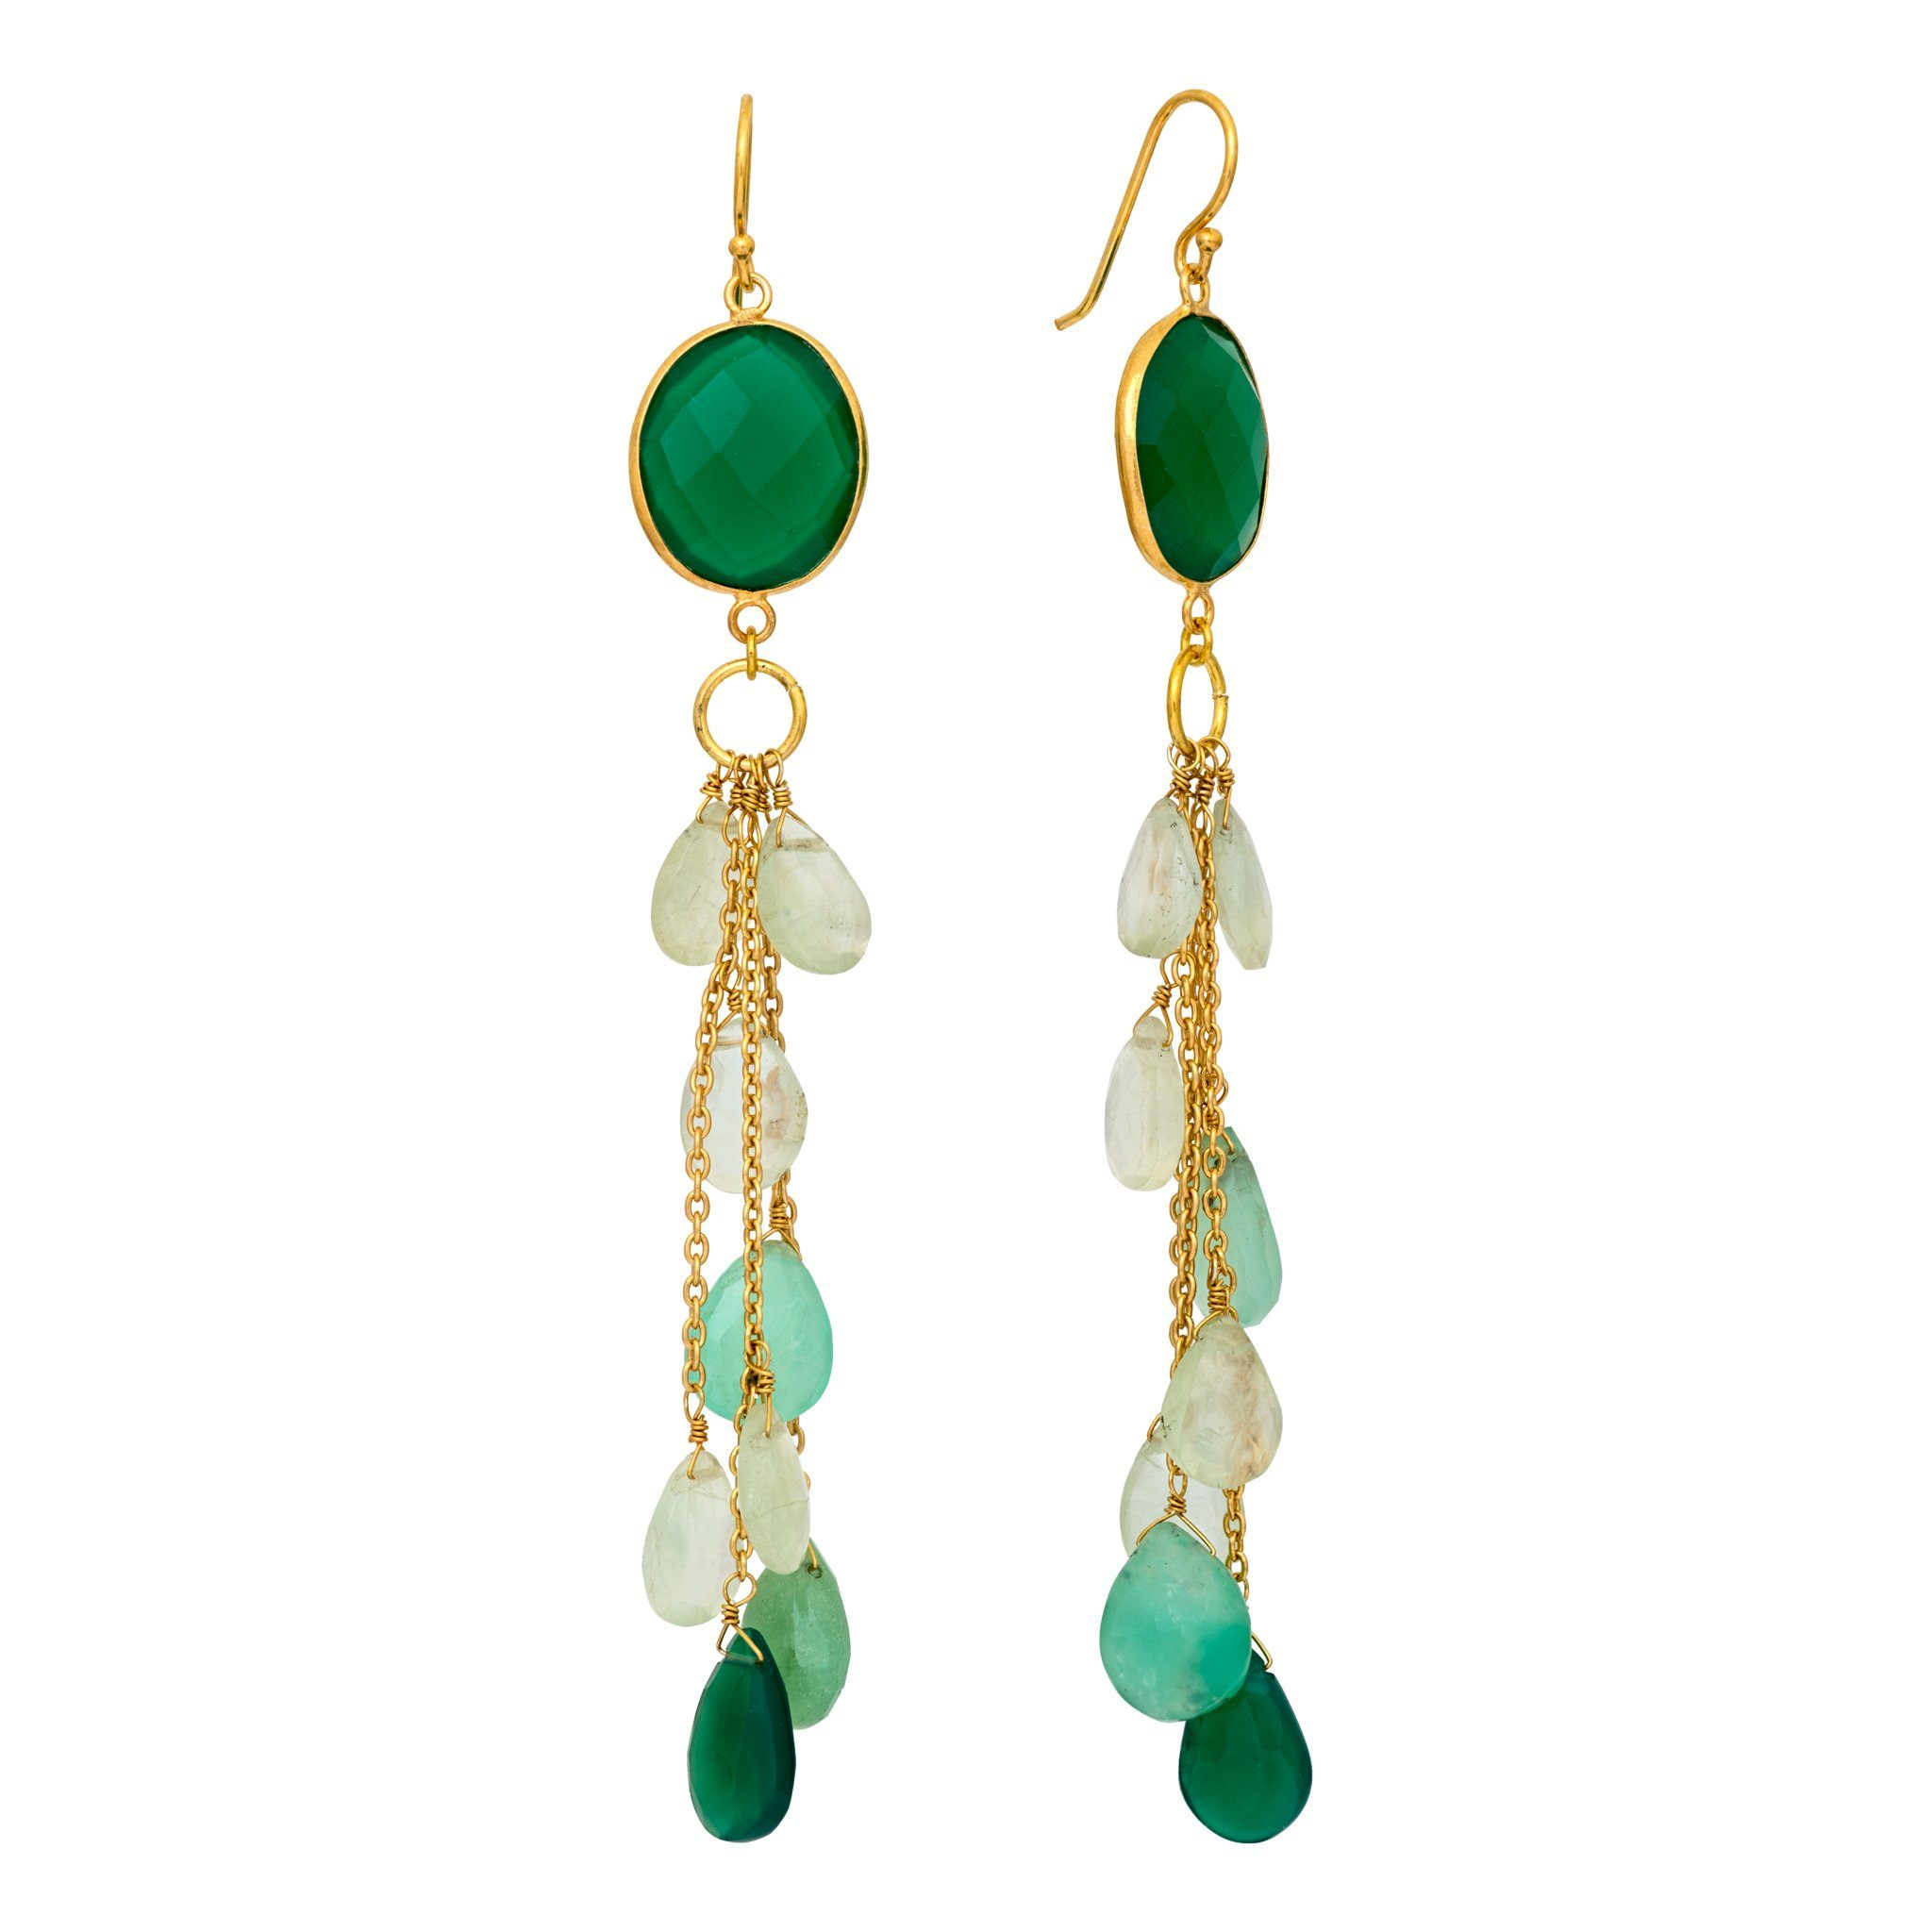 LUZ green onyx cluster long earrings - MadamSiam